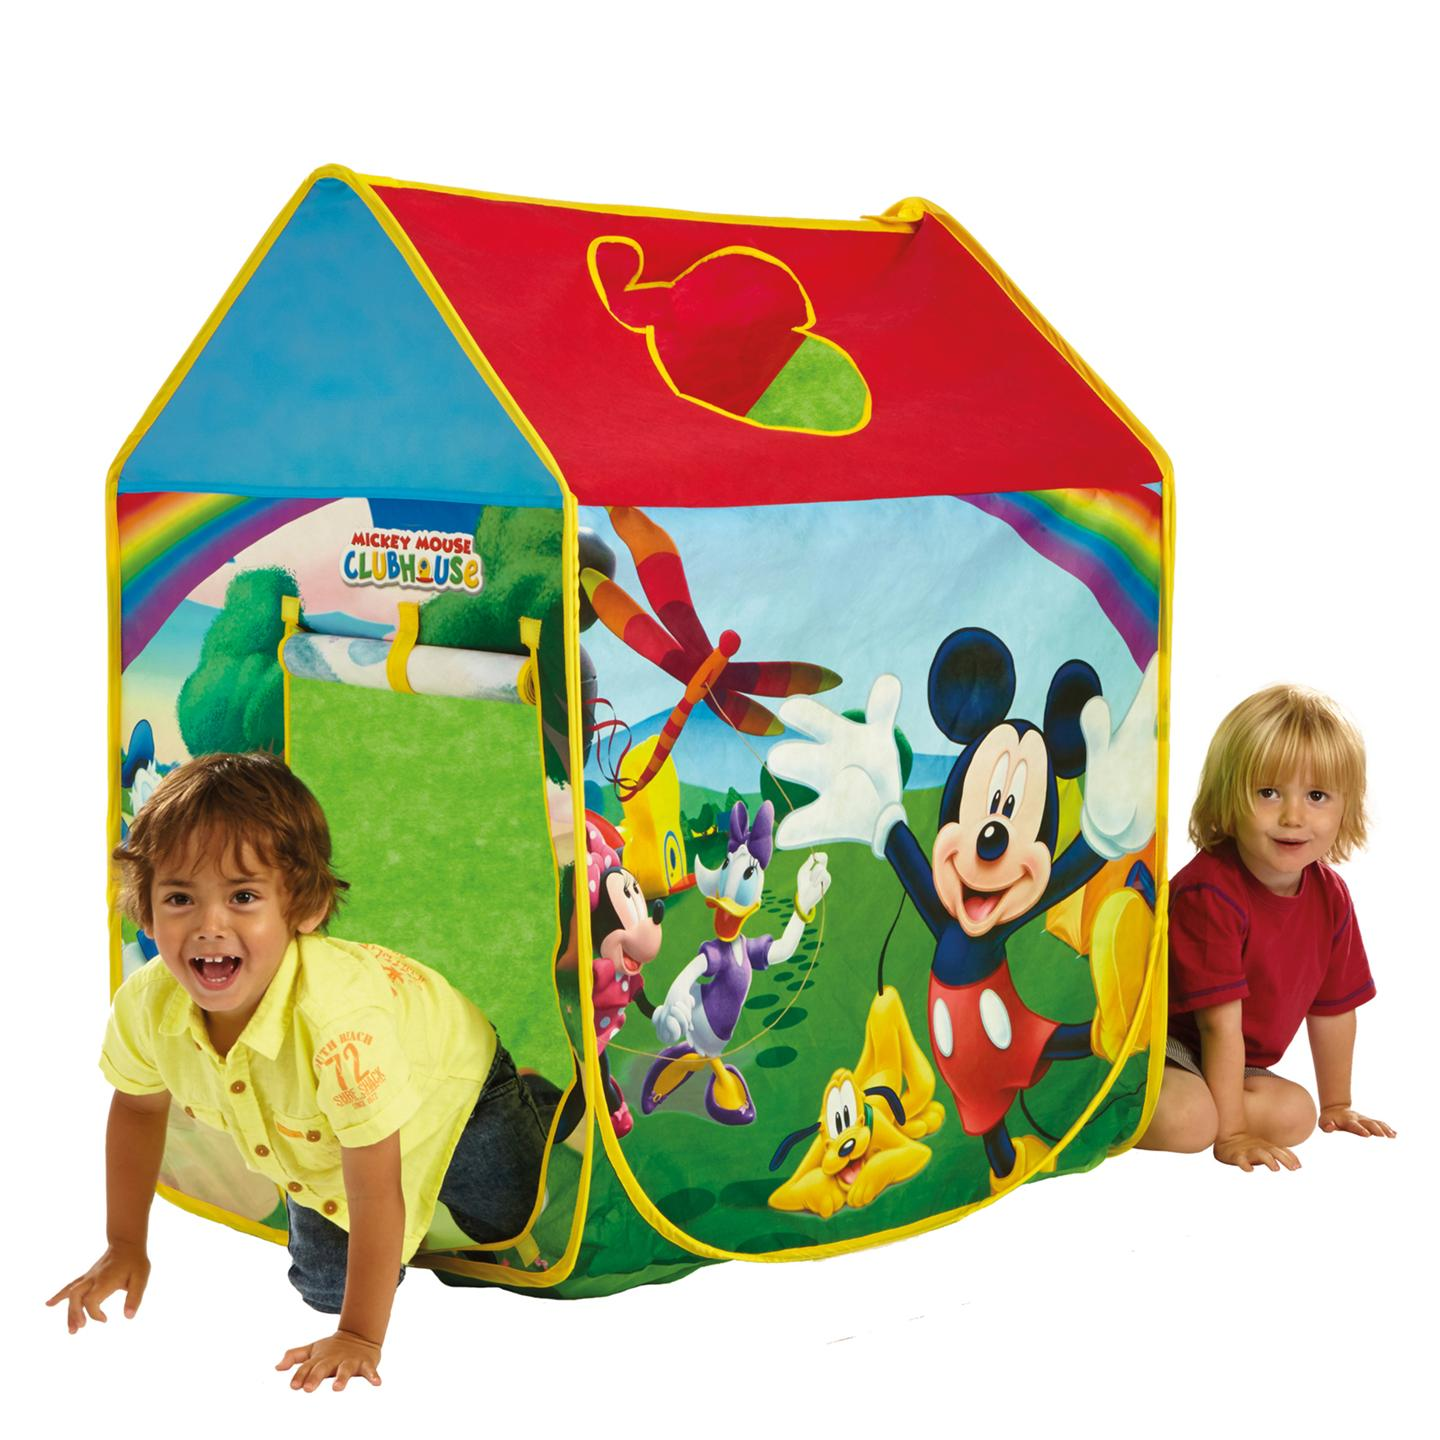 Kids-Disney-and-Character-Wendy-House-Pop-Up-  sc 1 st  Ebay SG & Kids Disney and Character Wendy House Pop Up Play Tent | eBay